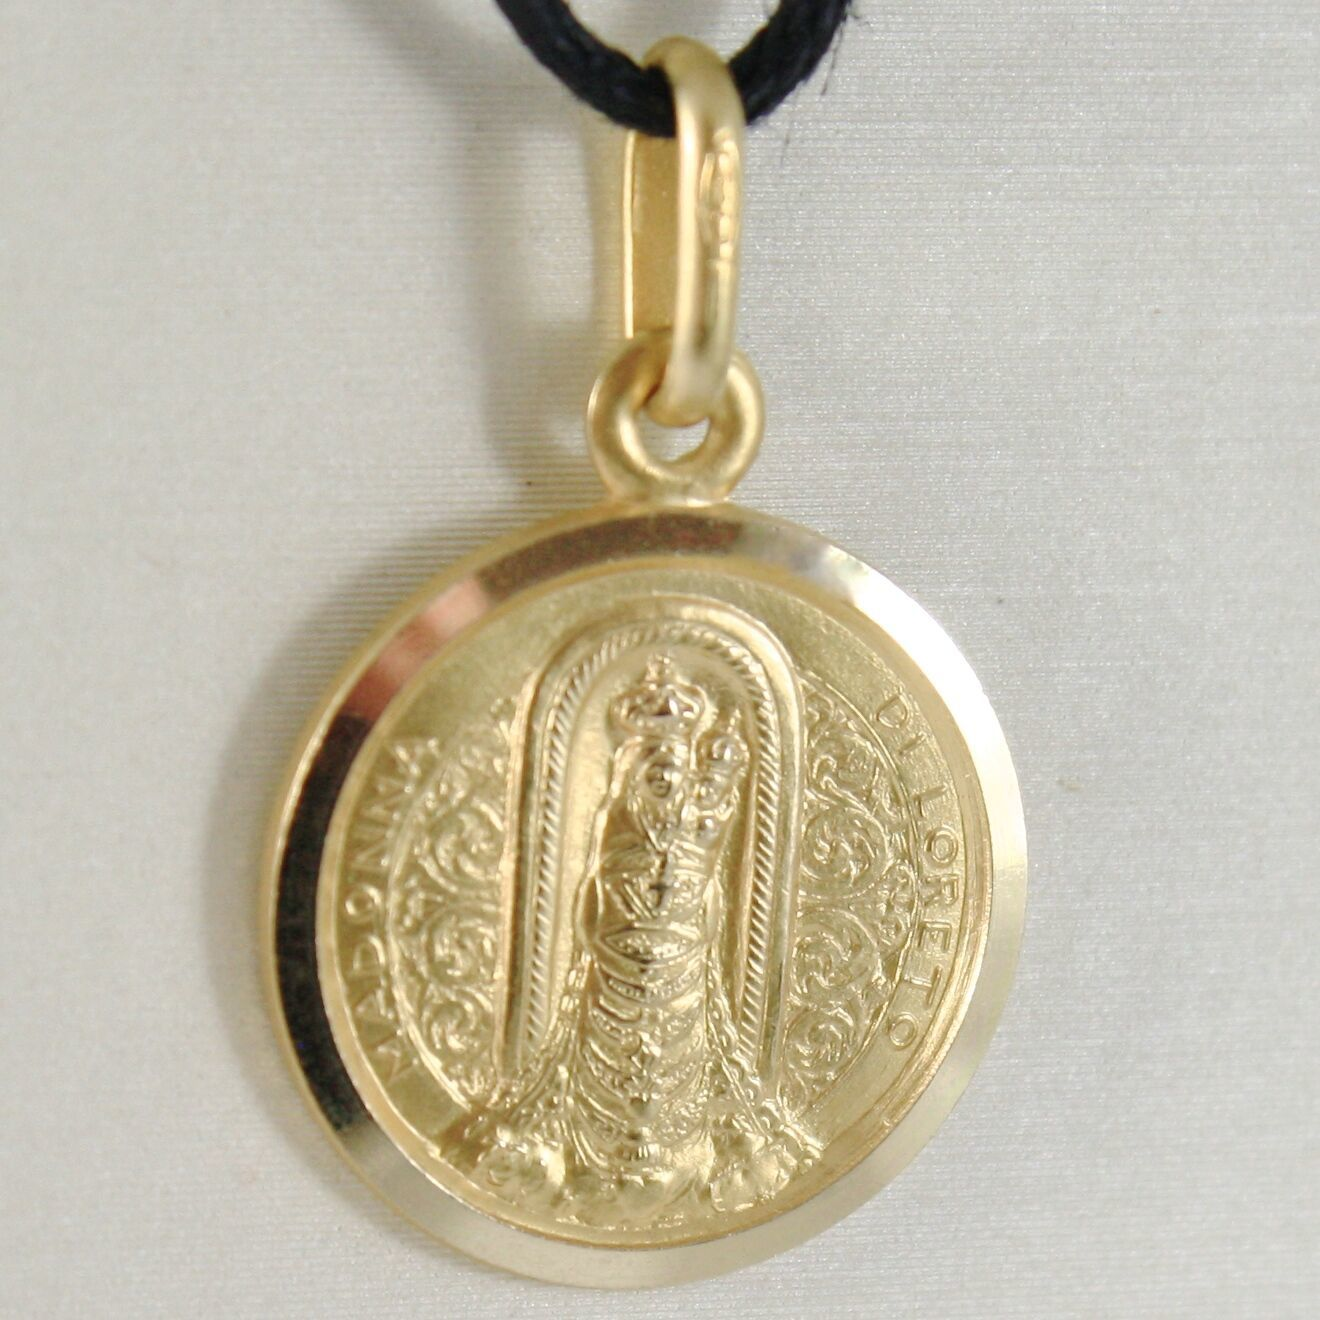 18K YELLOW GOLD MADONNA OUR LADY OF LORETO PATRON AVIATION MEDAL MADE IN ITALY